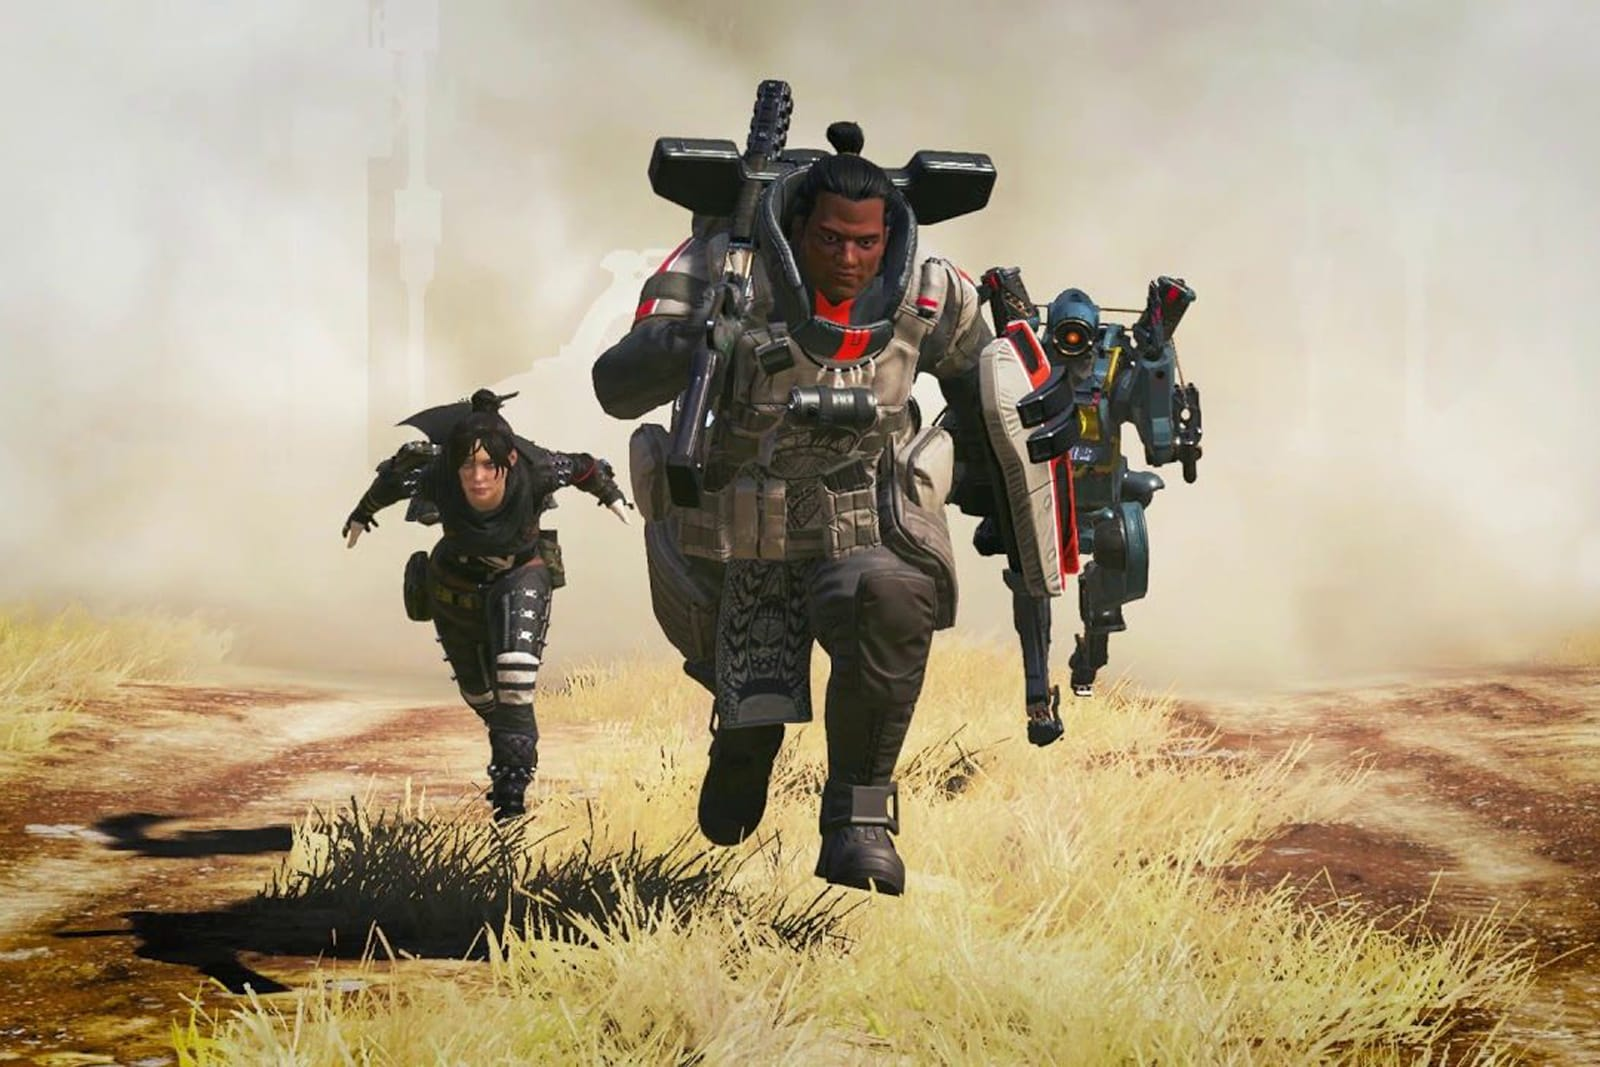 'Apex Legends' update makes its big boys harder to kill